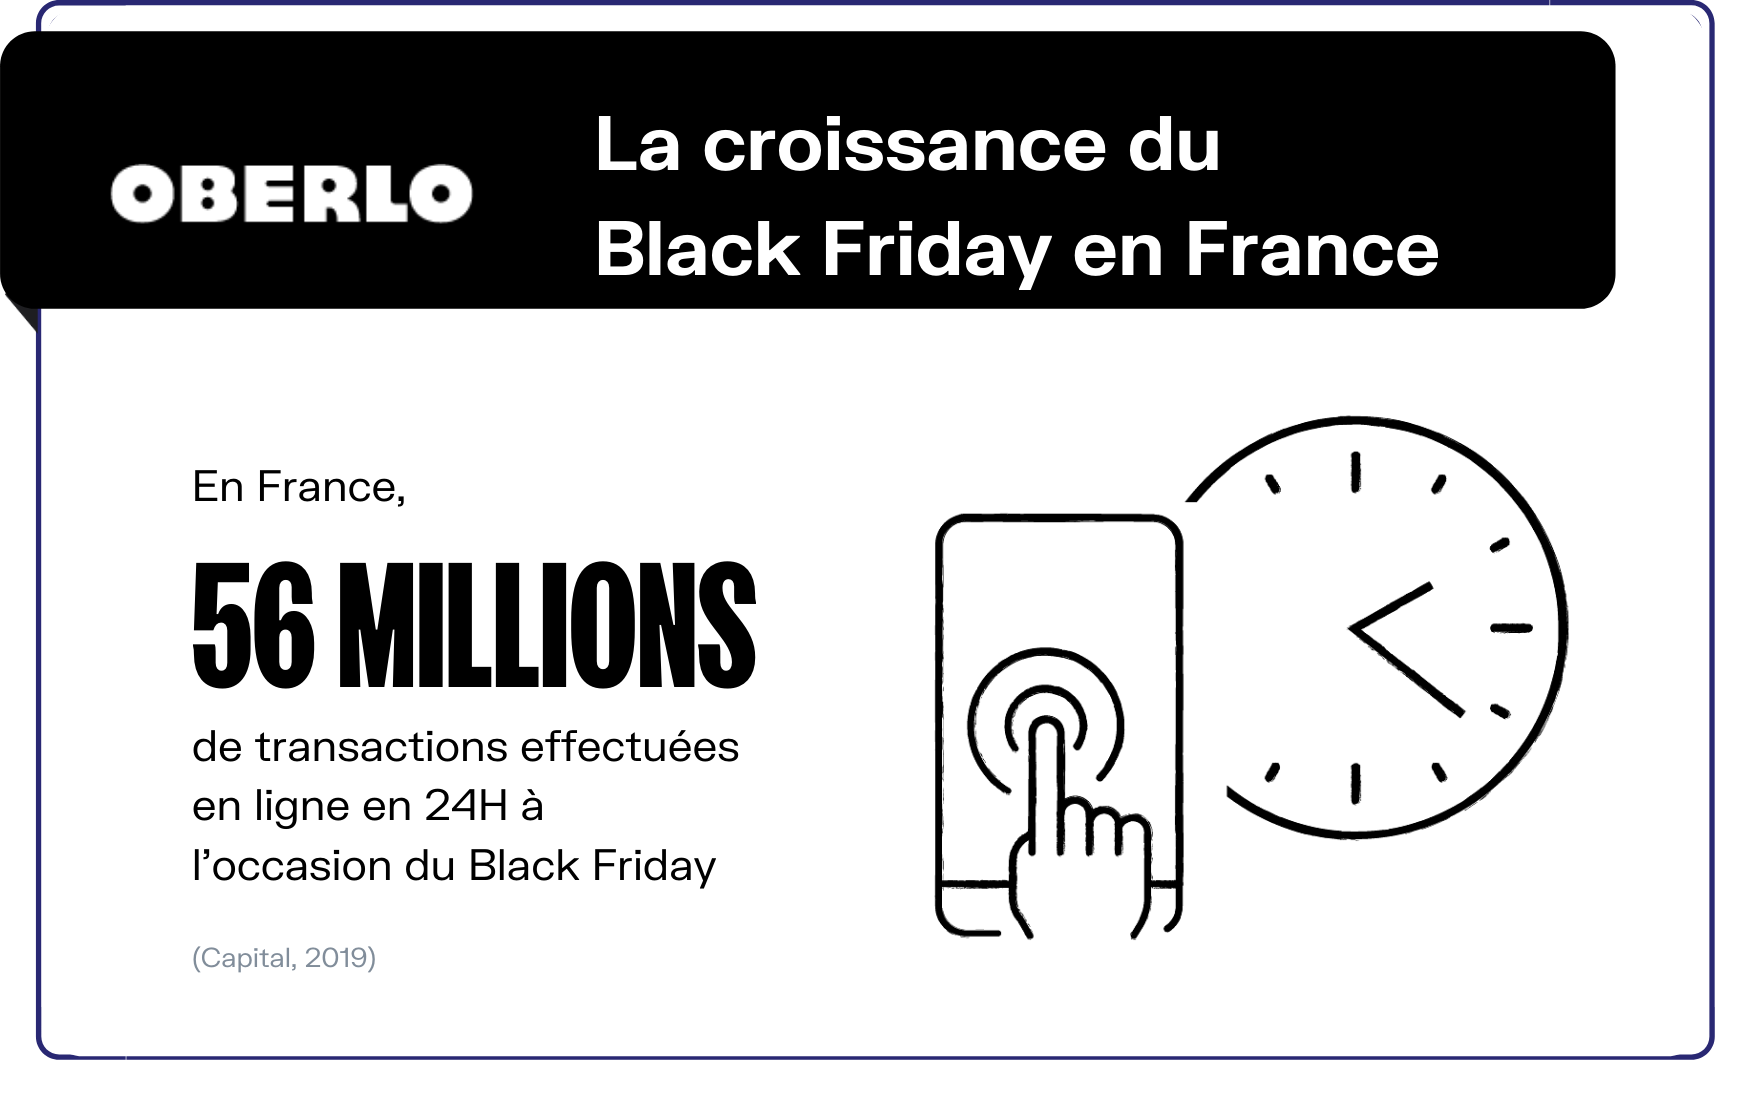 Black Friday France transactions